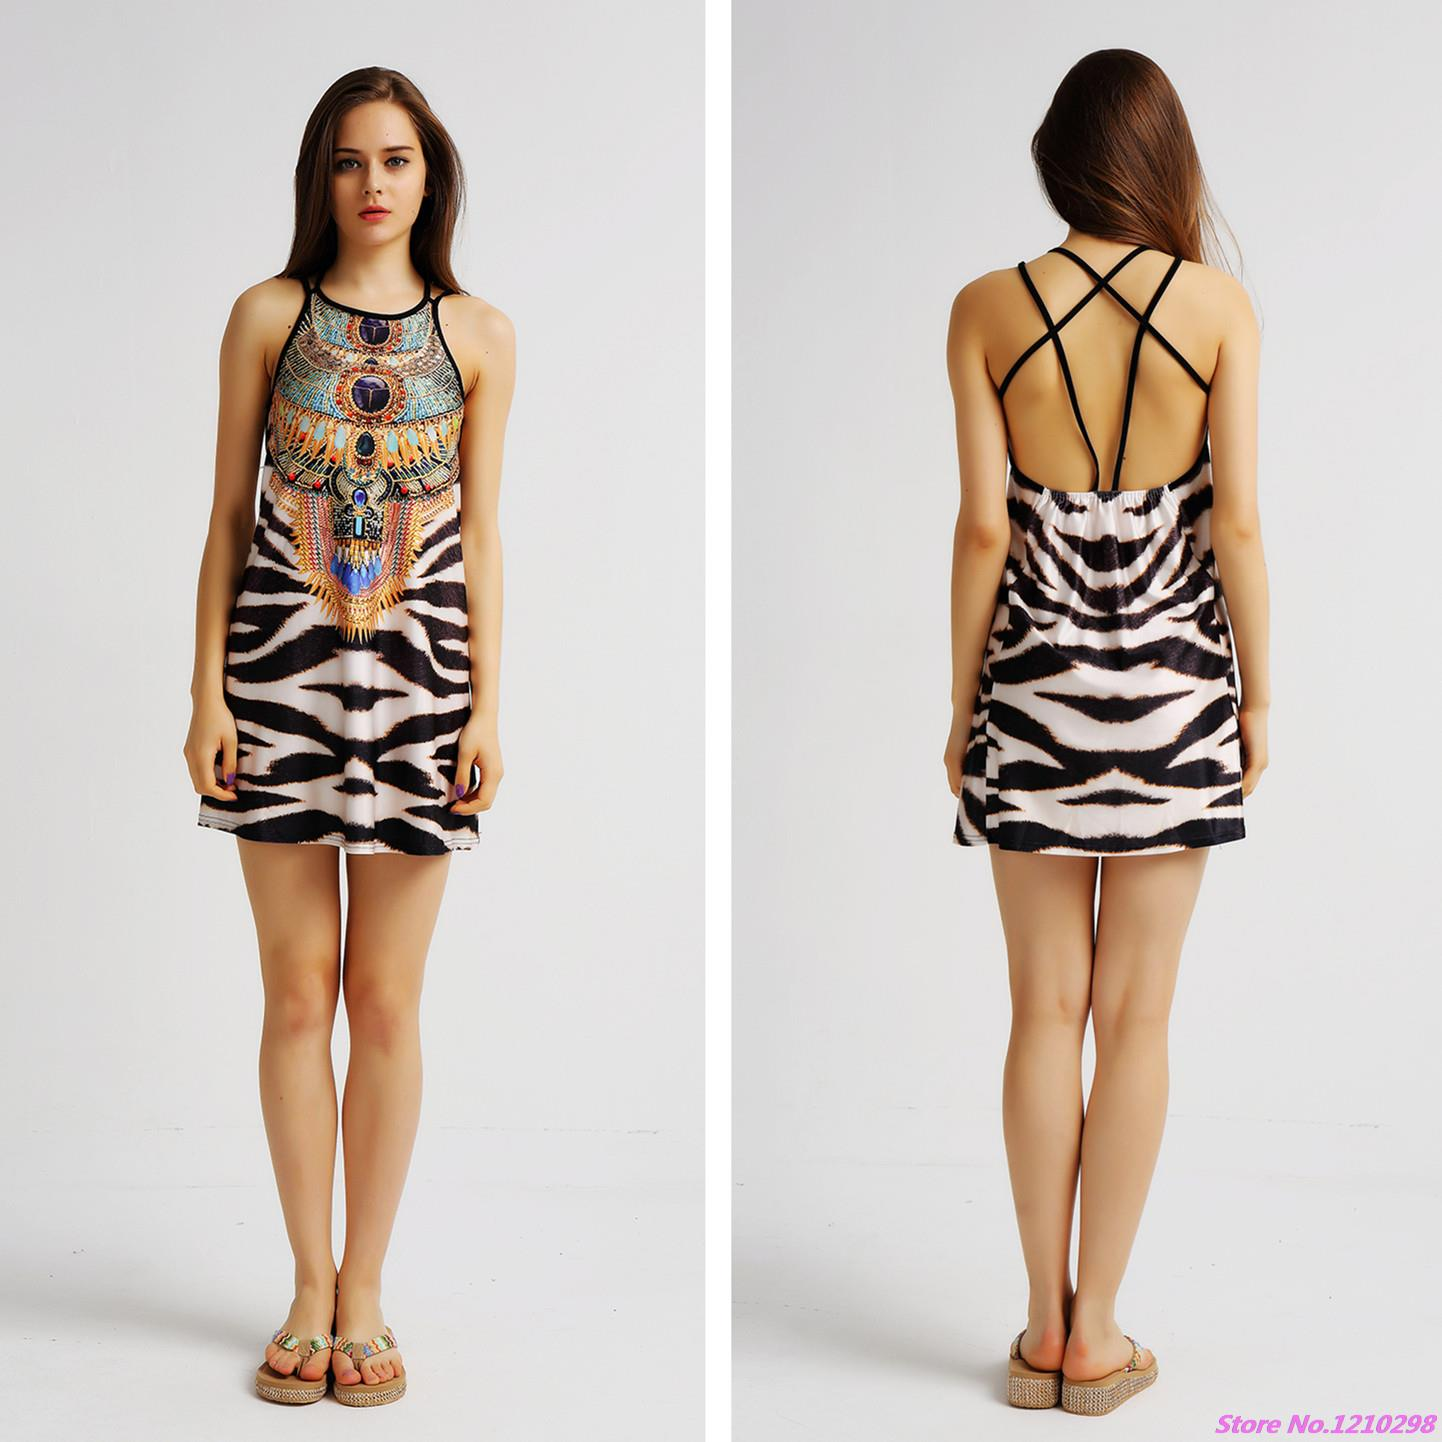 Women Leopard Printed Beach Dress Summer Backless Dresses Party Wear Sleeveless Sports In Cover Ups From Entertainment